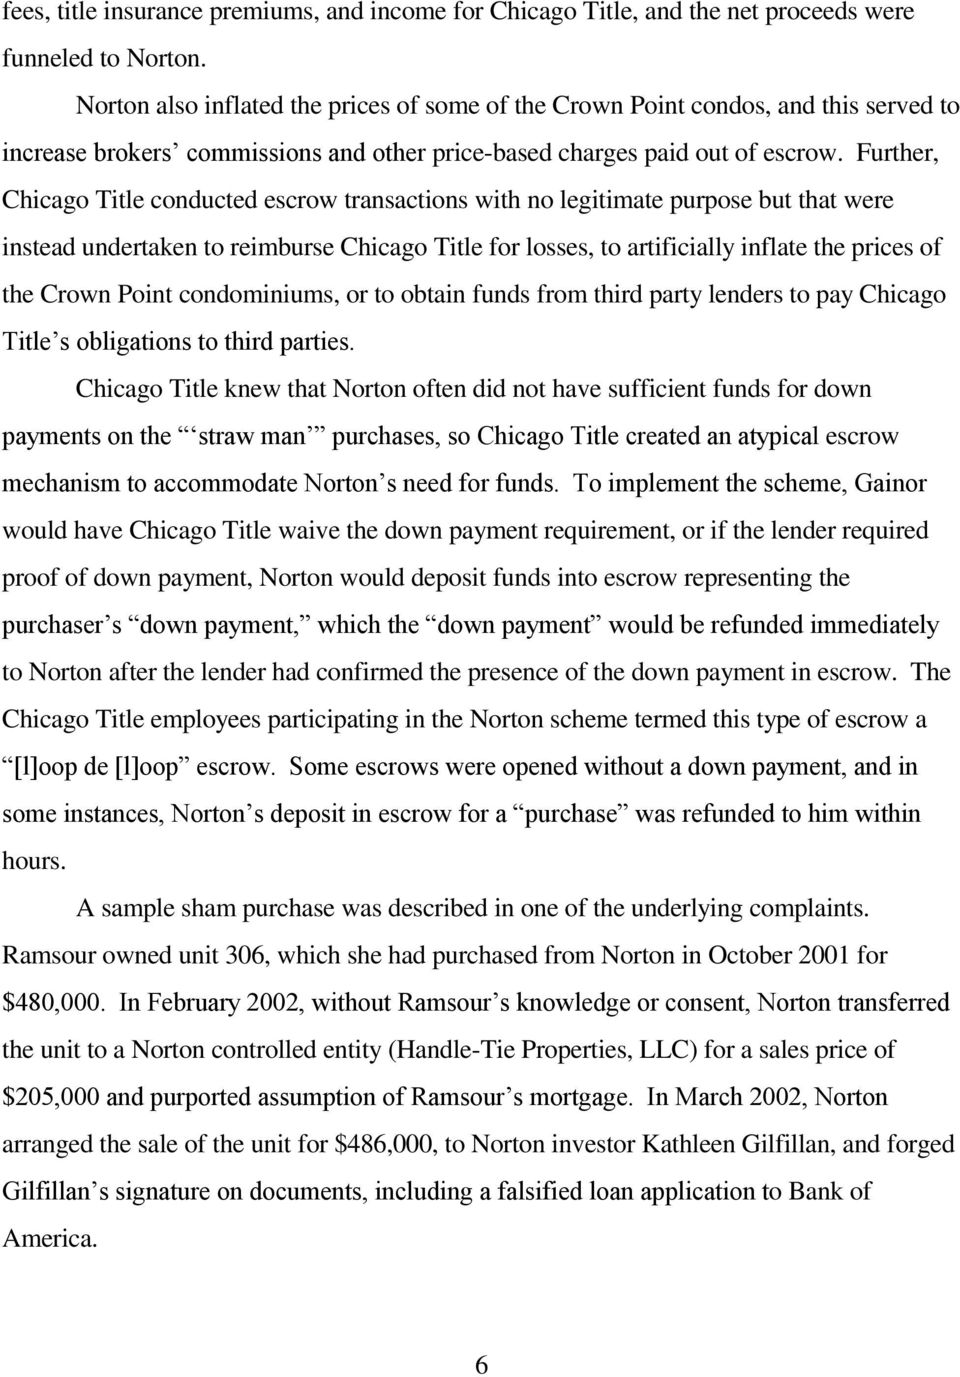 Further, Chicago Title conducted escrow transactions with no legitimate purpose but that were instead undertaken to reimburse Chicago Title for losses, to artificially inflate the prices of the Crown